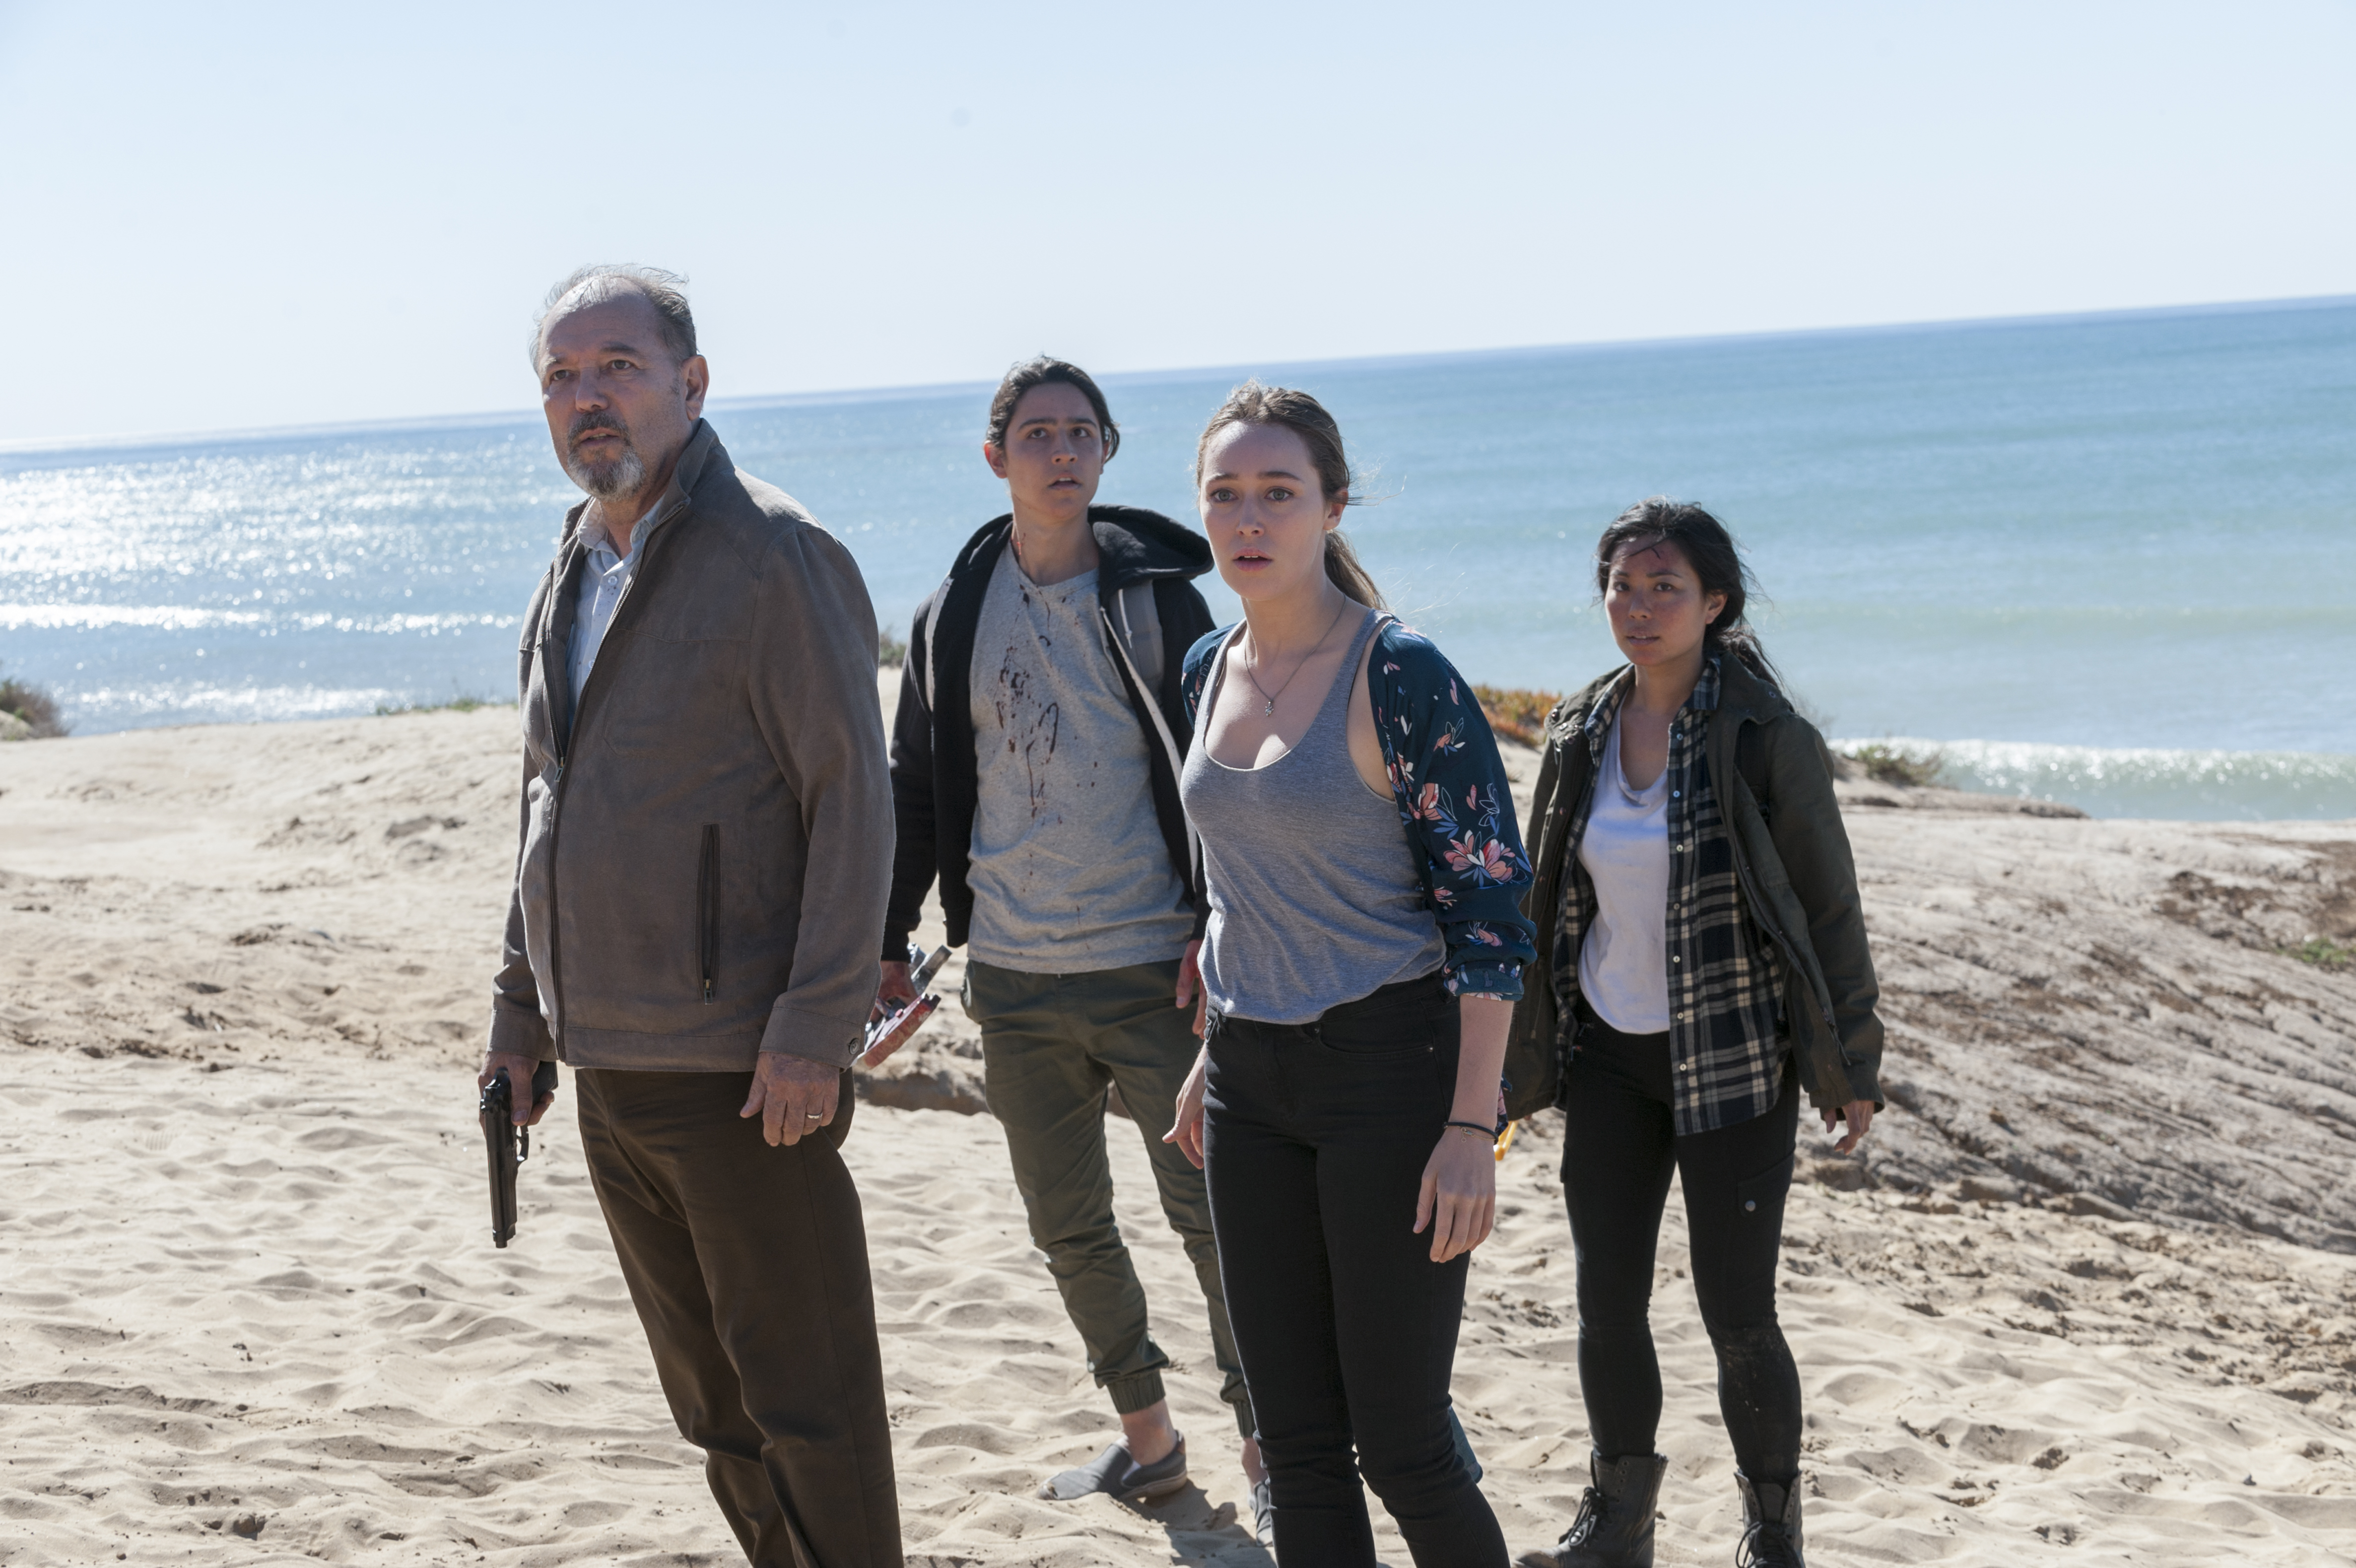 Episode 345: Fear the Walking Dead - S2E3 - We All Fall Down